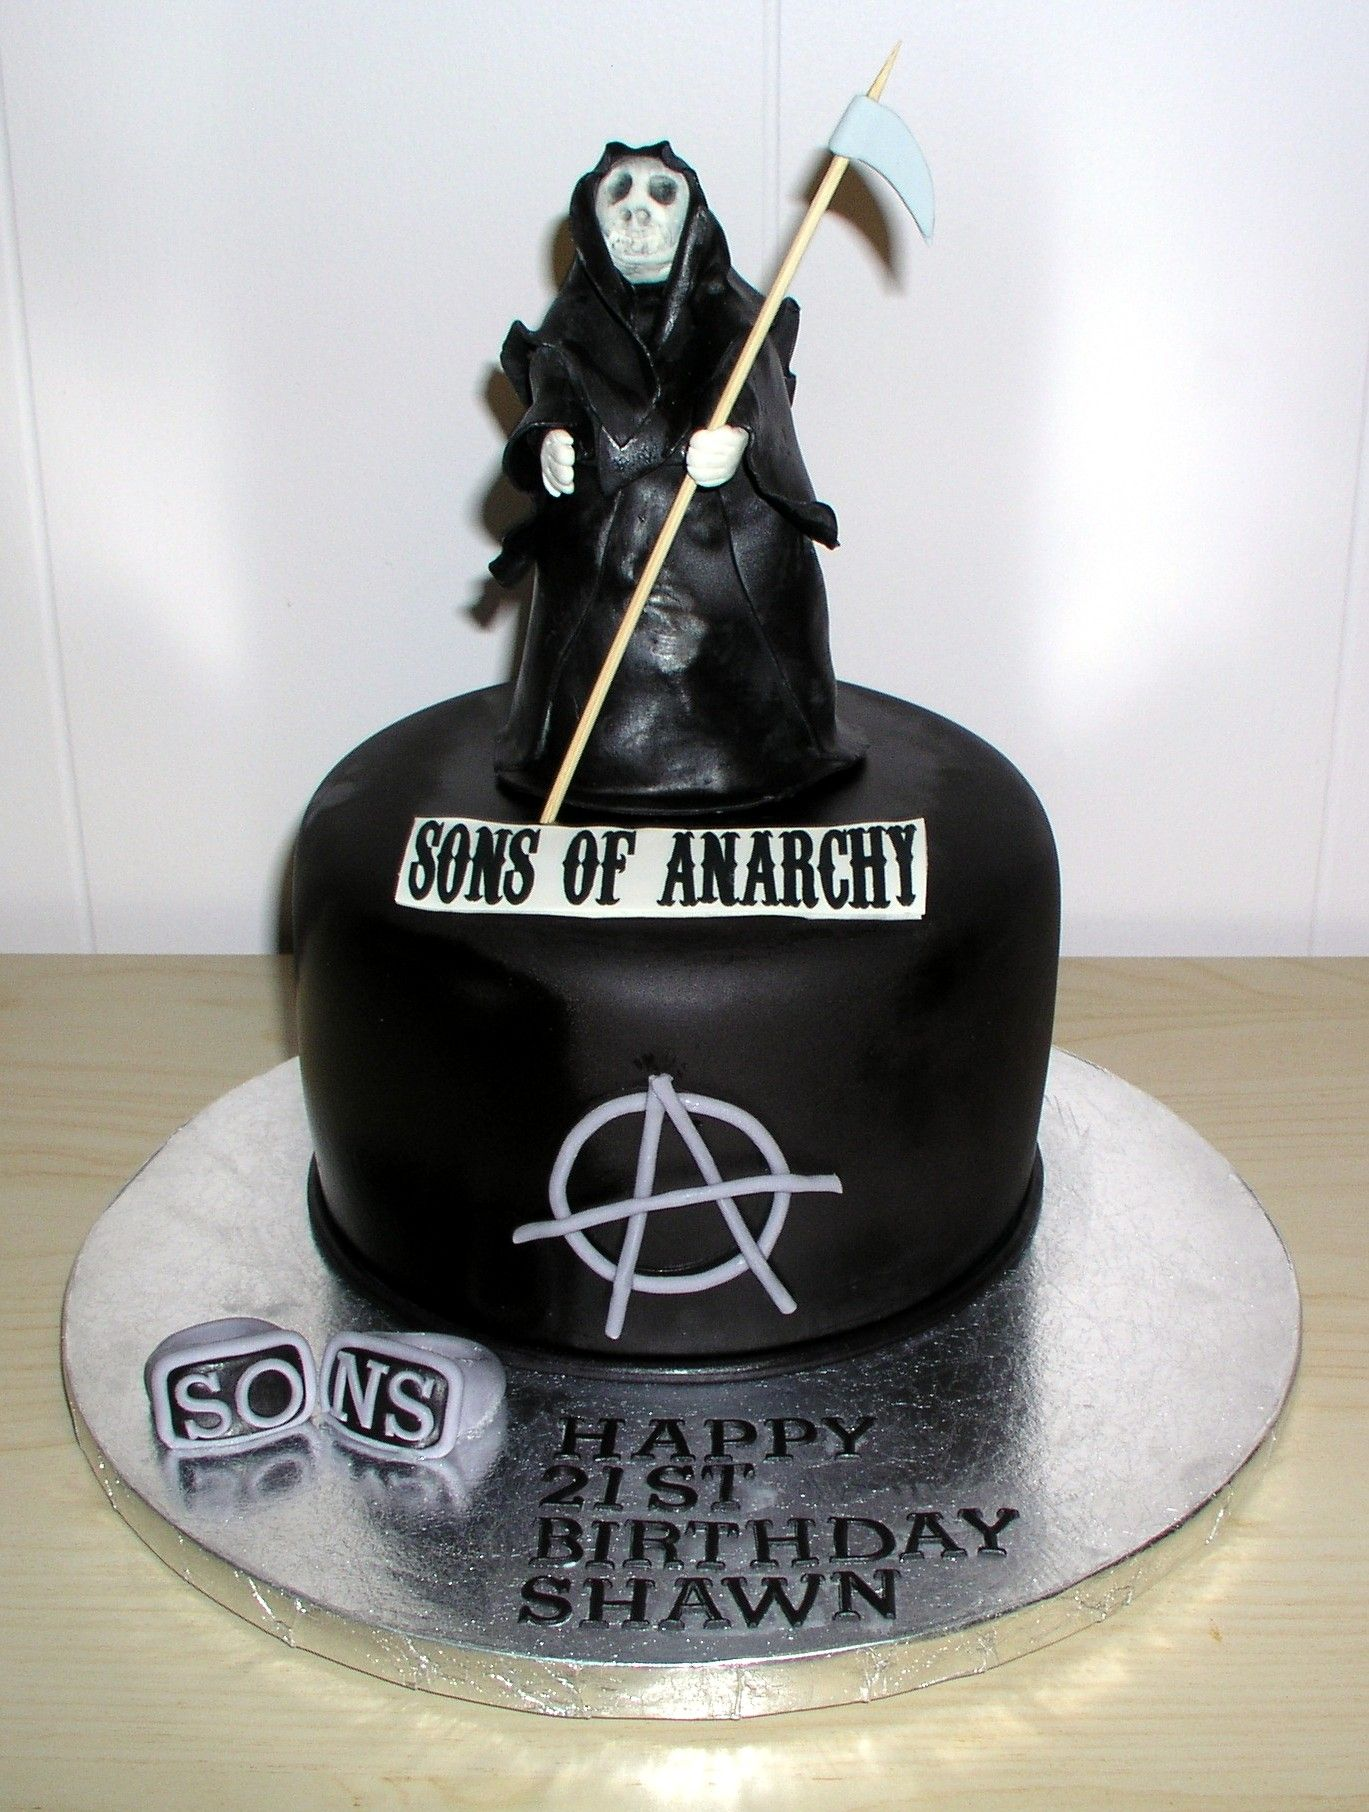 Sons of Anarchy Cake Cake Dreams & Cookie Wishes